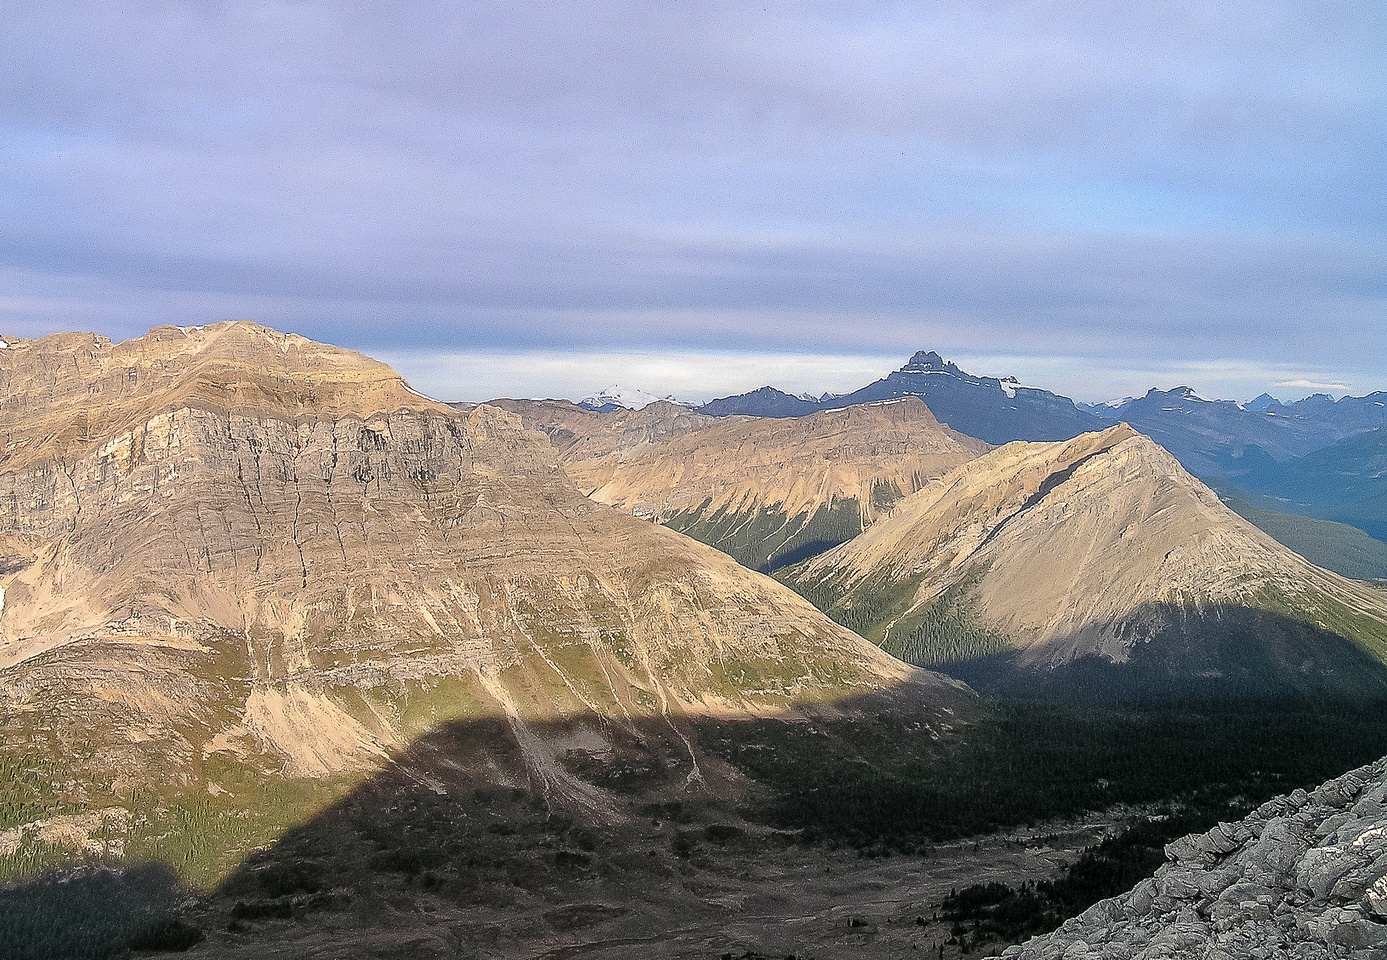 Hector in the far distance with our next object (Skoki) in the foreground and Fossil rising on the left.